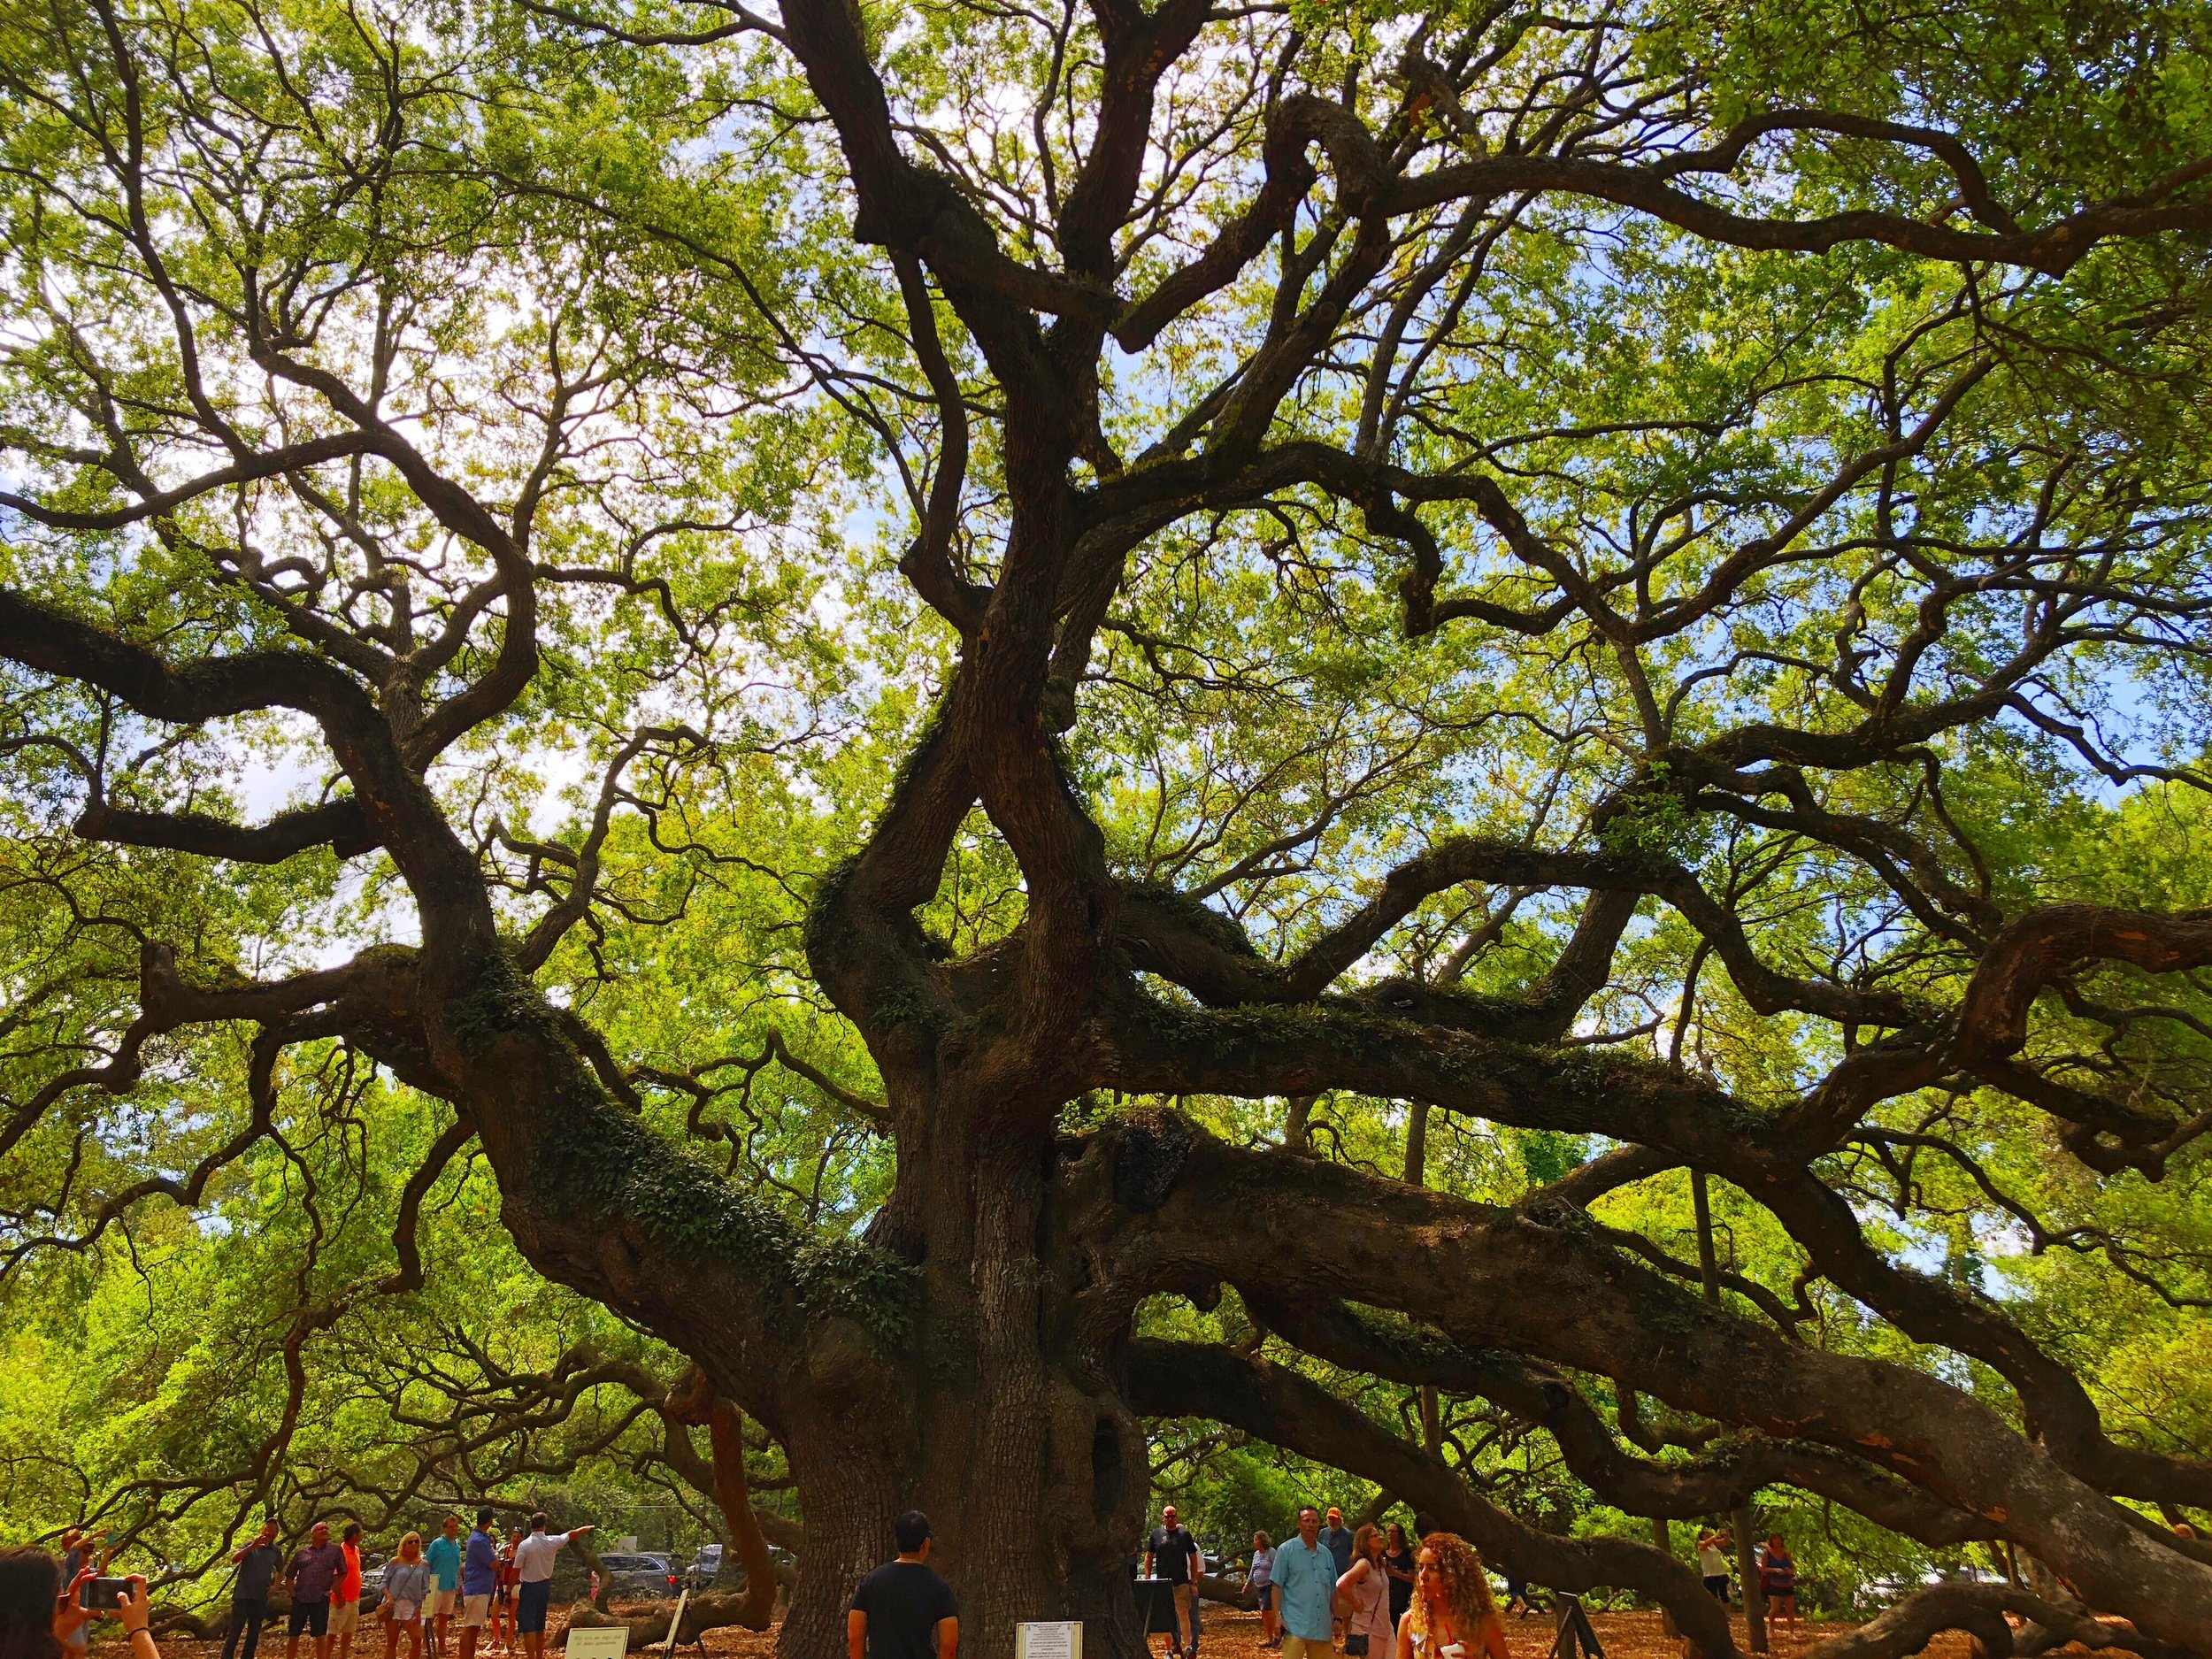 The Angel Oak, Estimated to be between 500-600 years old, on John's Island, SC